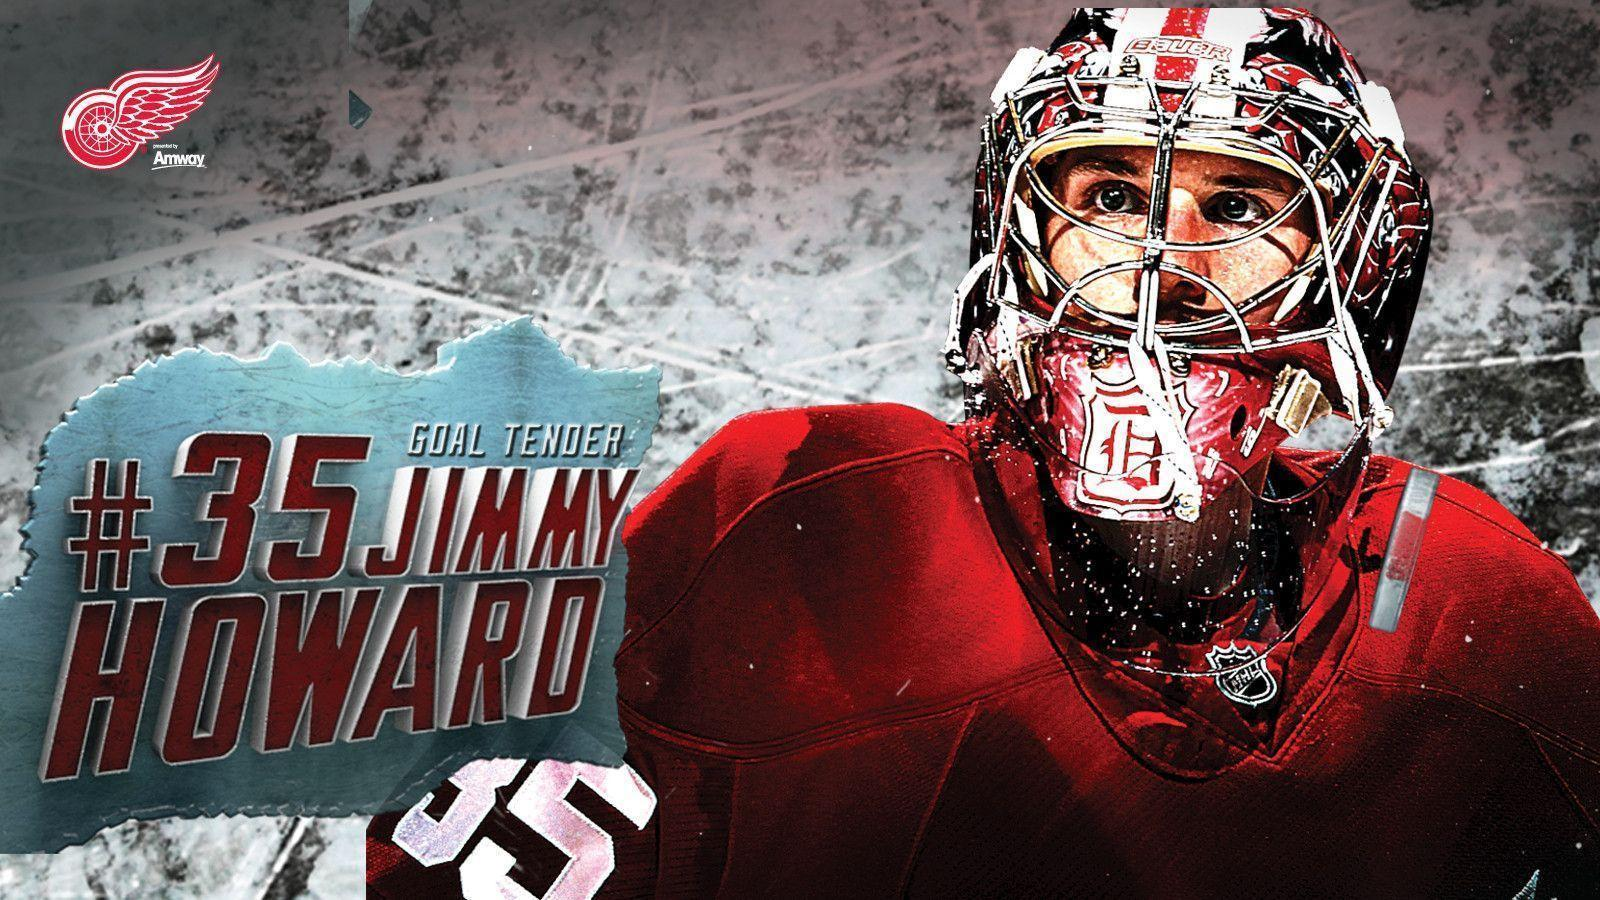 Jimmy Howard Wallpapers 1600x900